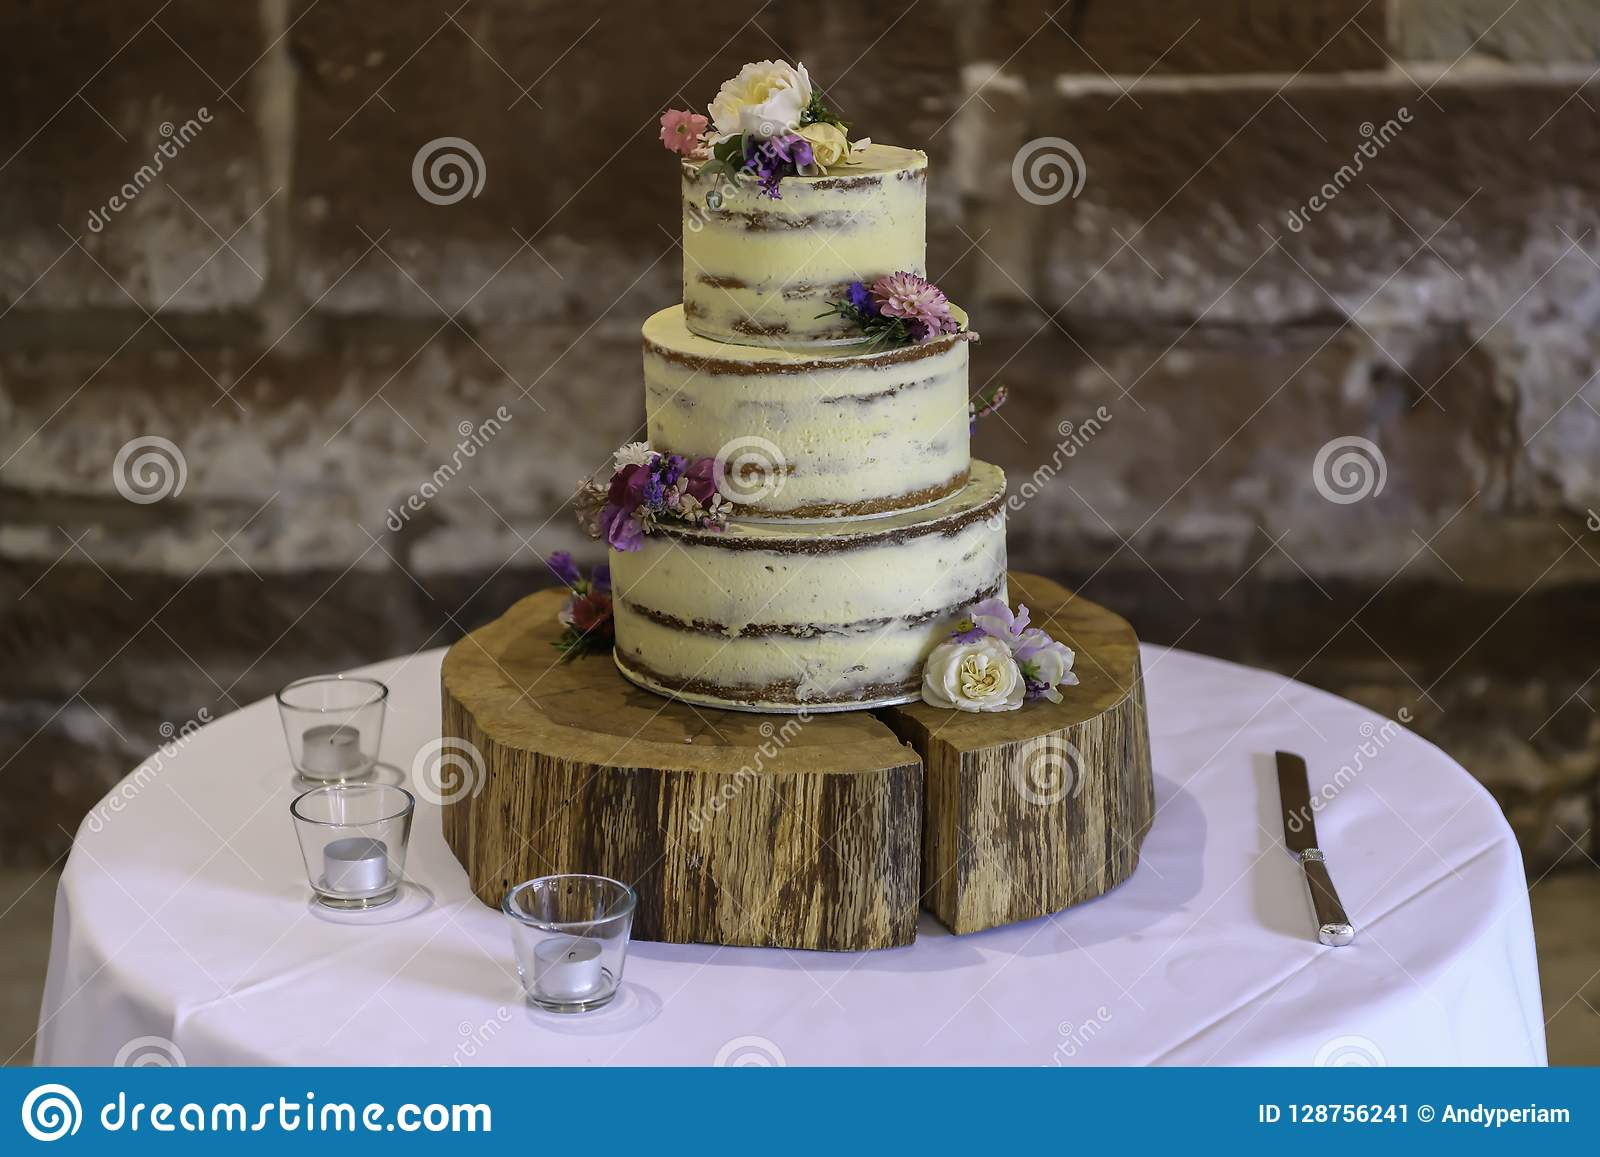 Homemade Wedding Cake.Homemade Semi Naked Wedding Cake Stock Image Image Of Buttercream